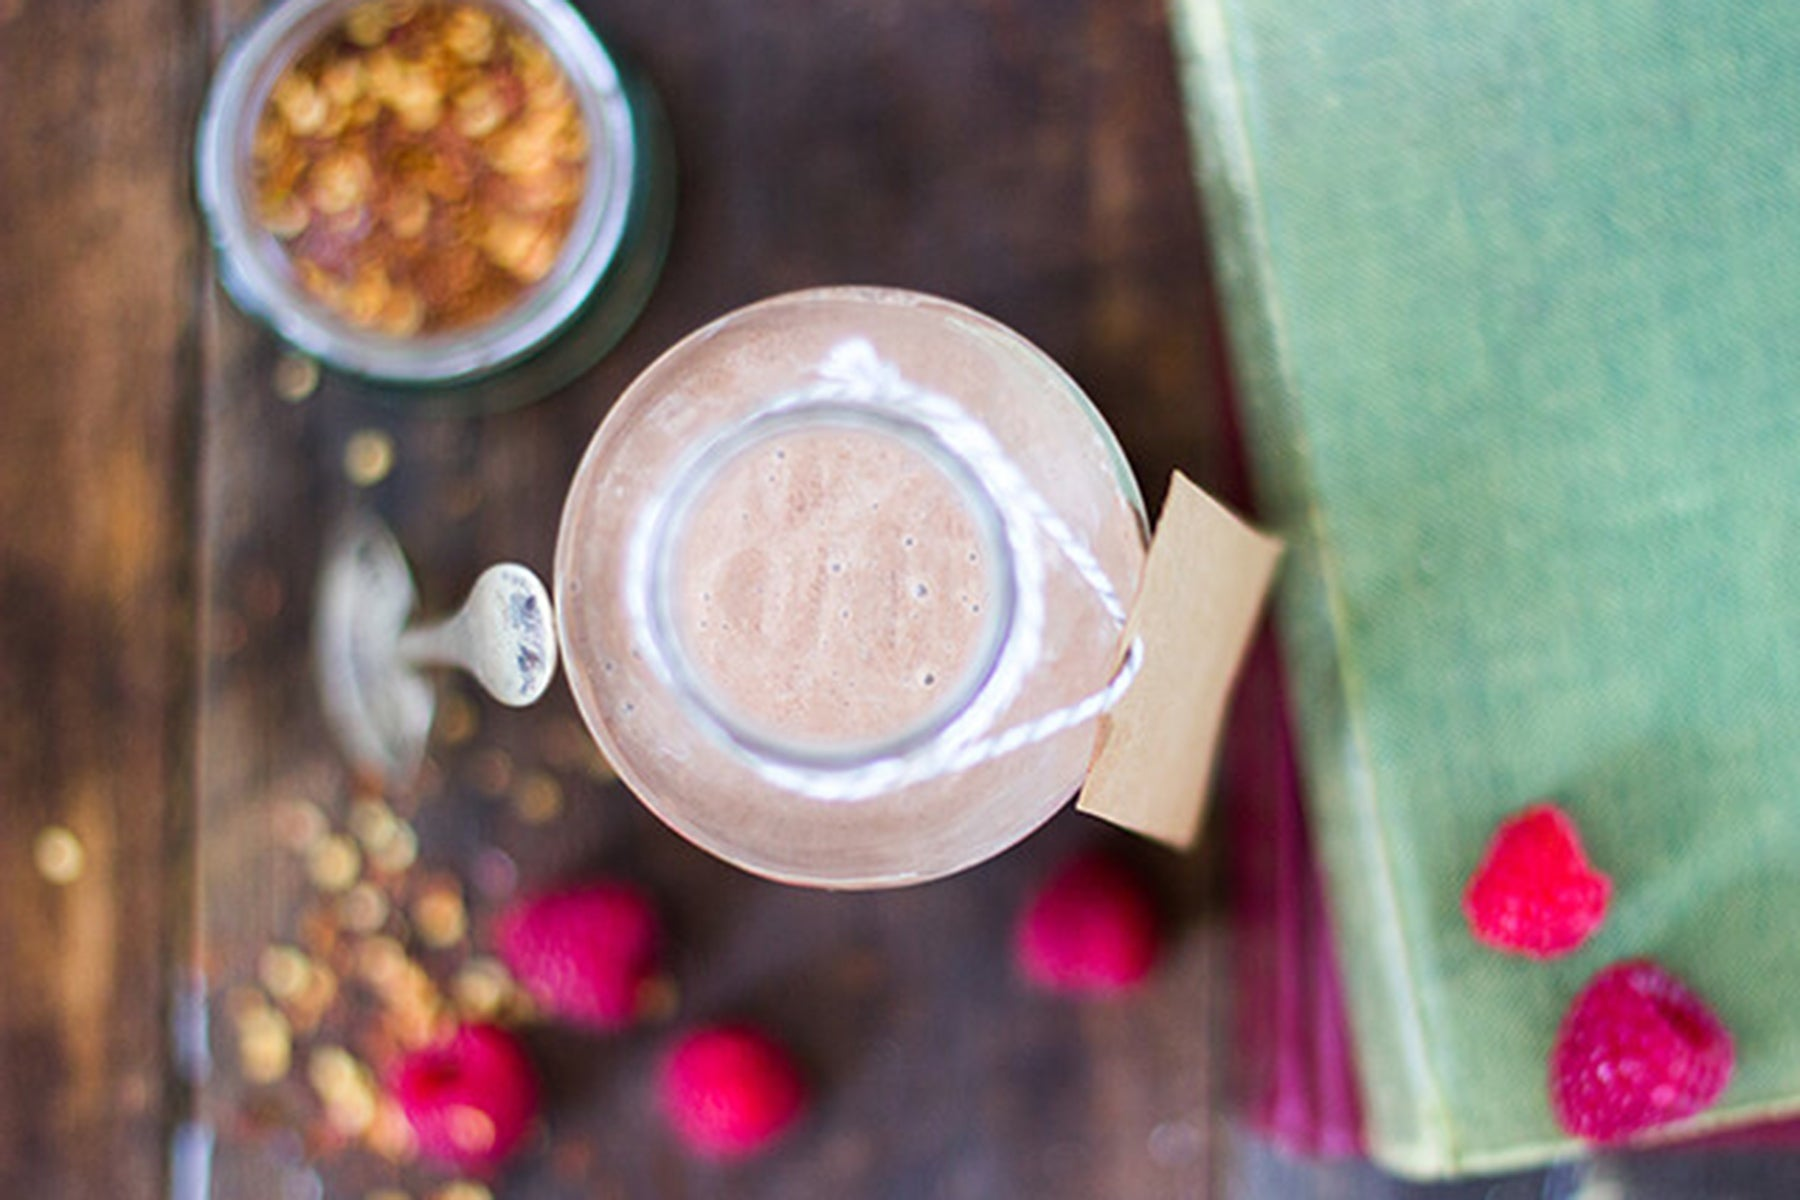 Chocolate Chilli Mousse Smoothie